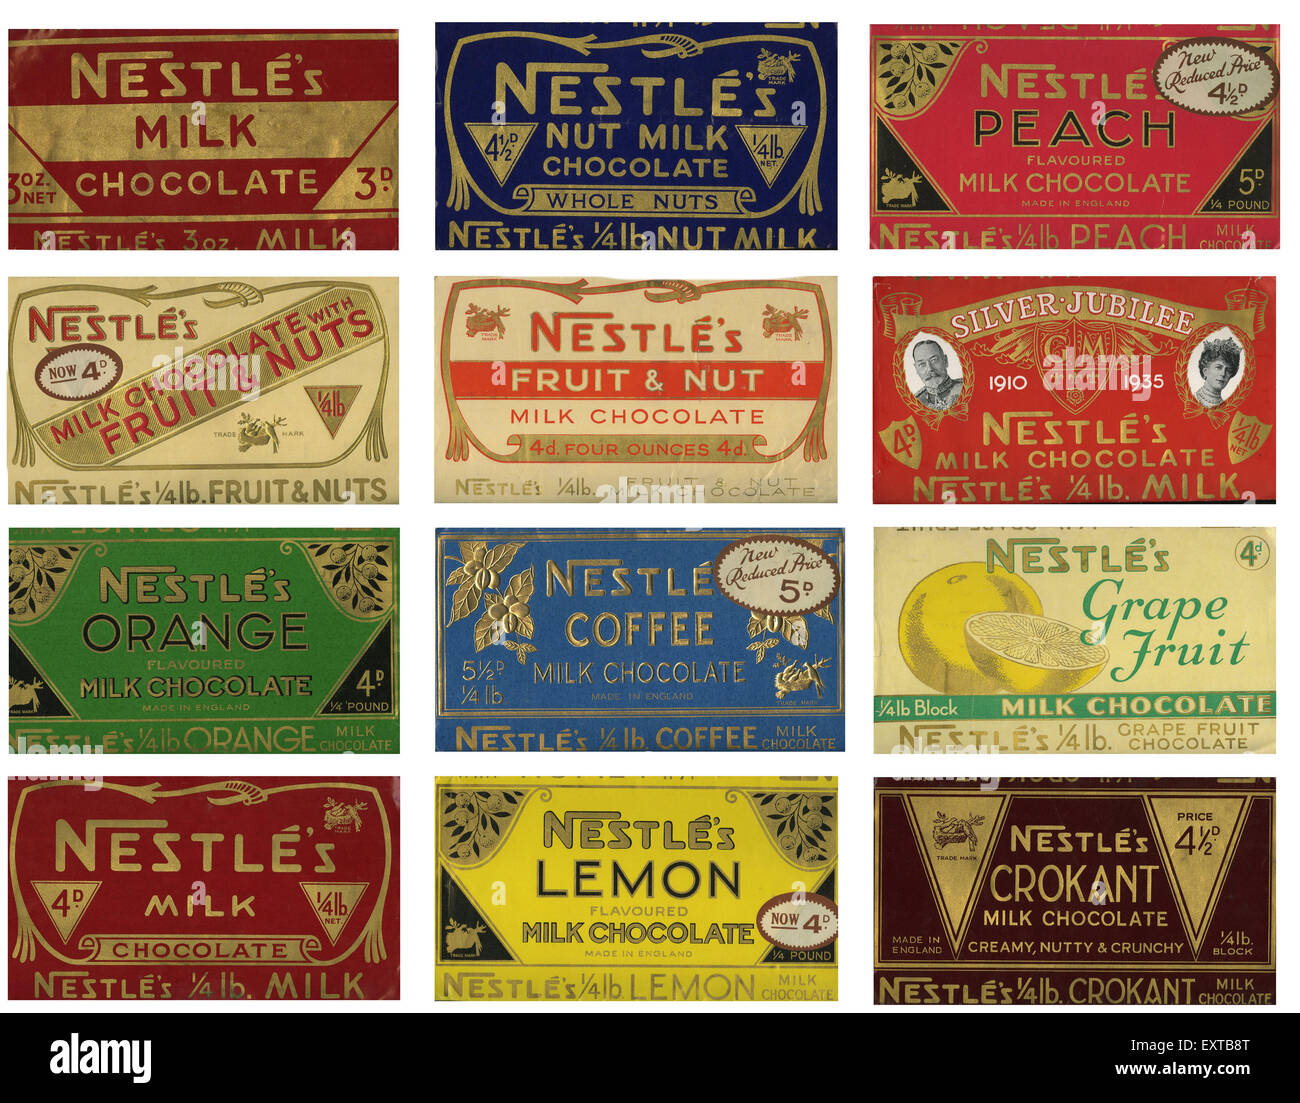 1930s UK Nestles Chocolate Wrappers Packaging Stock Photo, Royalty ...